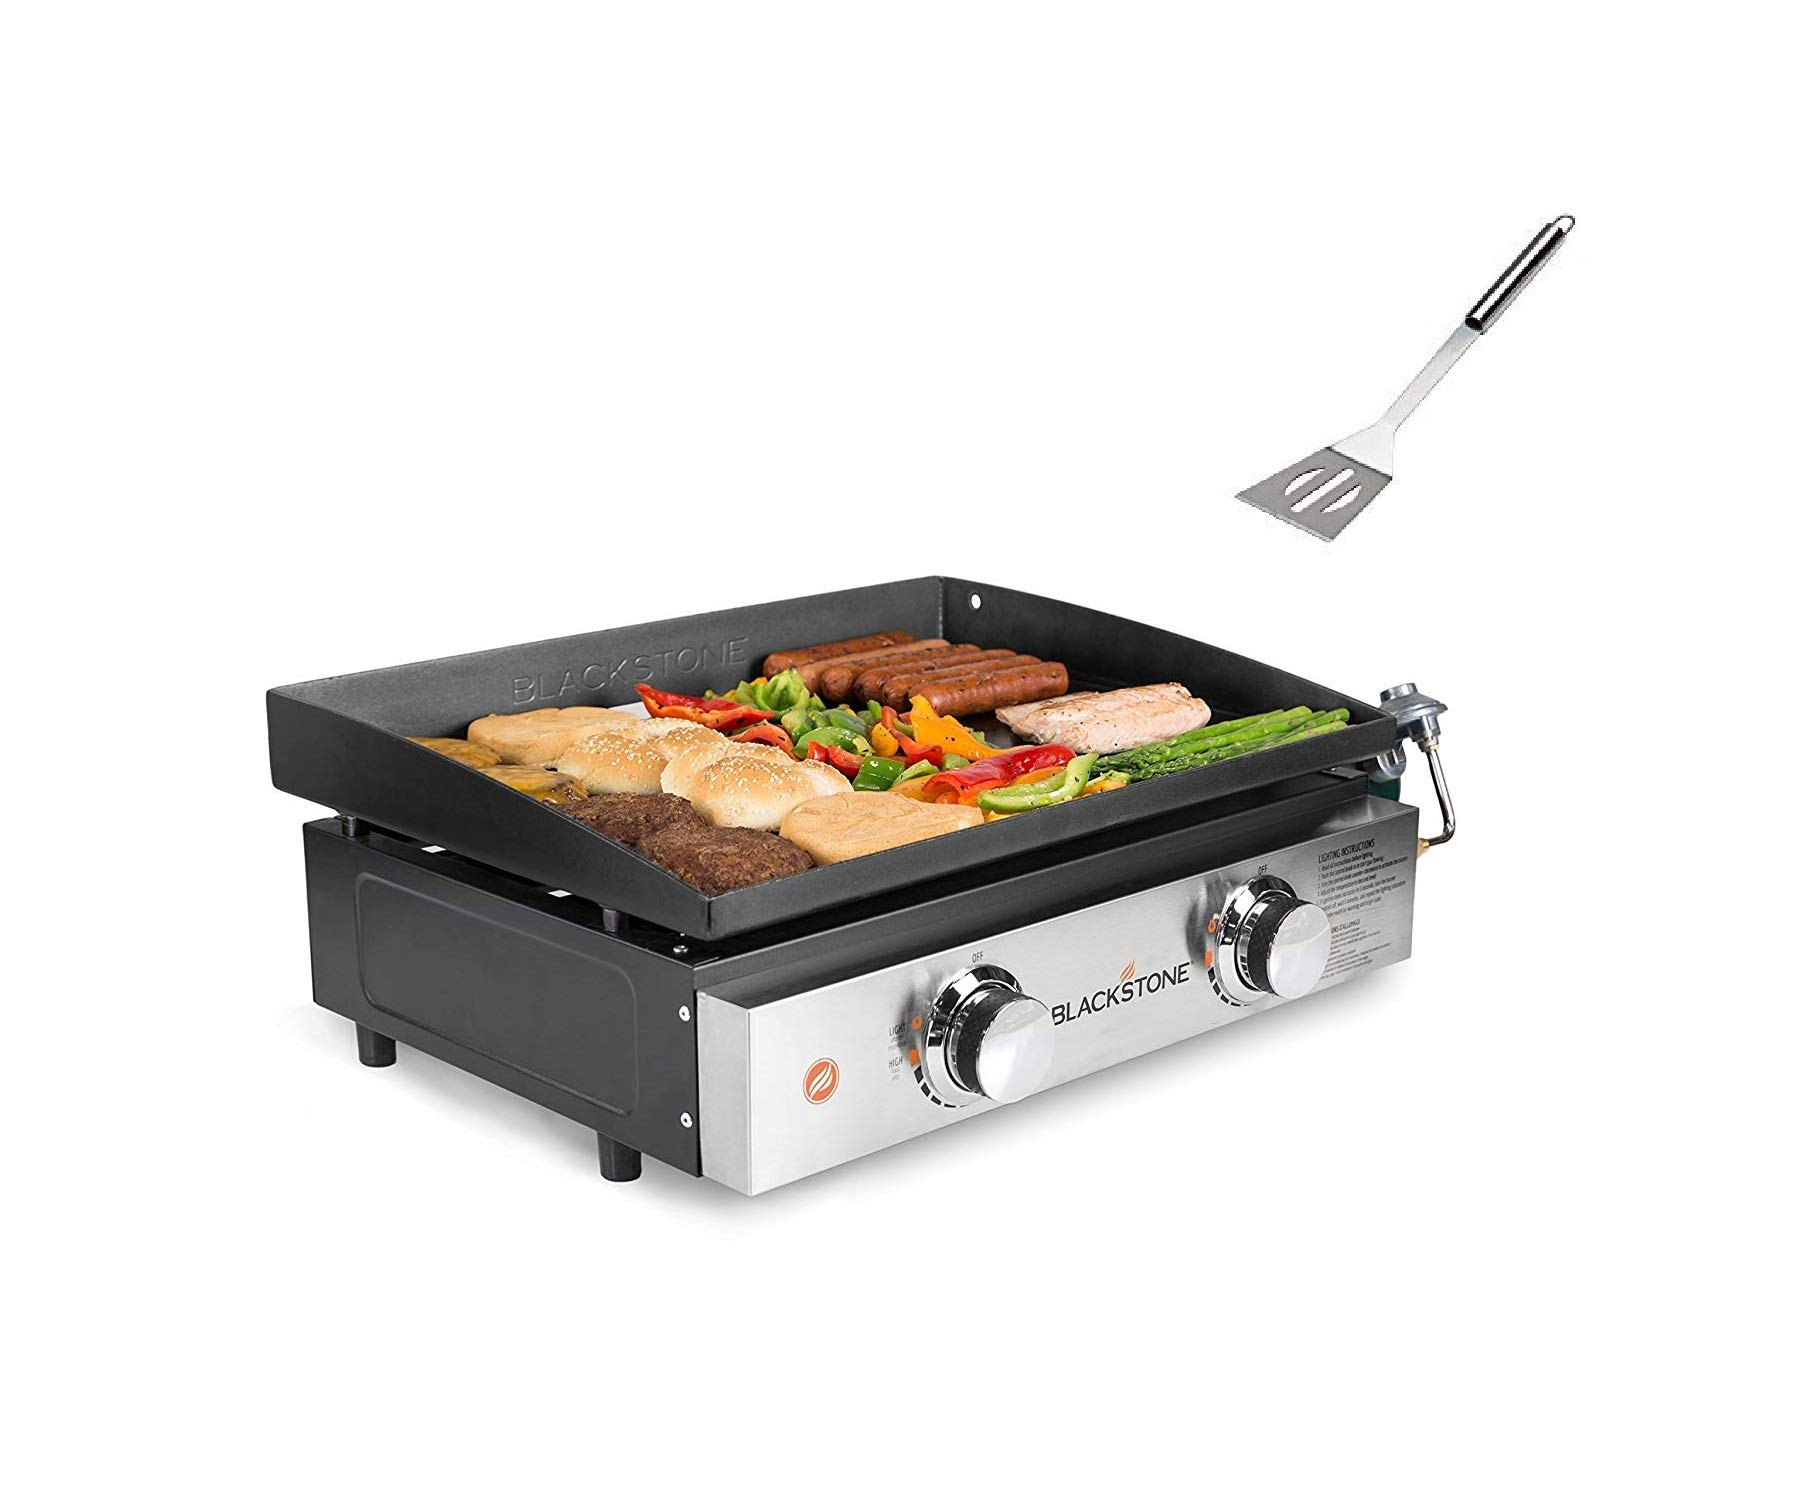 Blackstone Tabletop Grill, 22 Inch, Propane Fueled,2 Adjustable Burners, Rear Grease Trap, Black with Barbecue Set